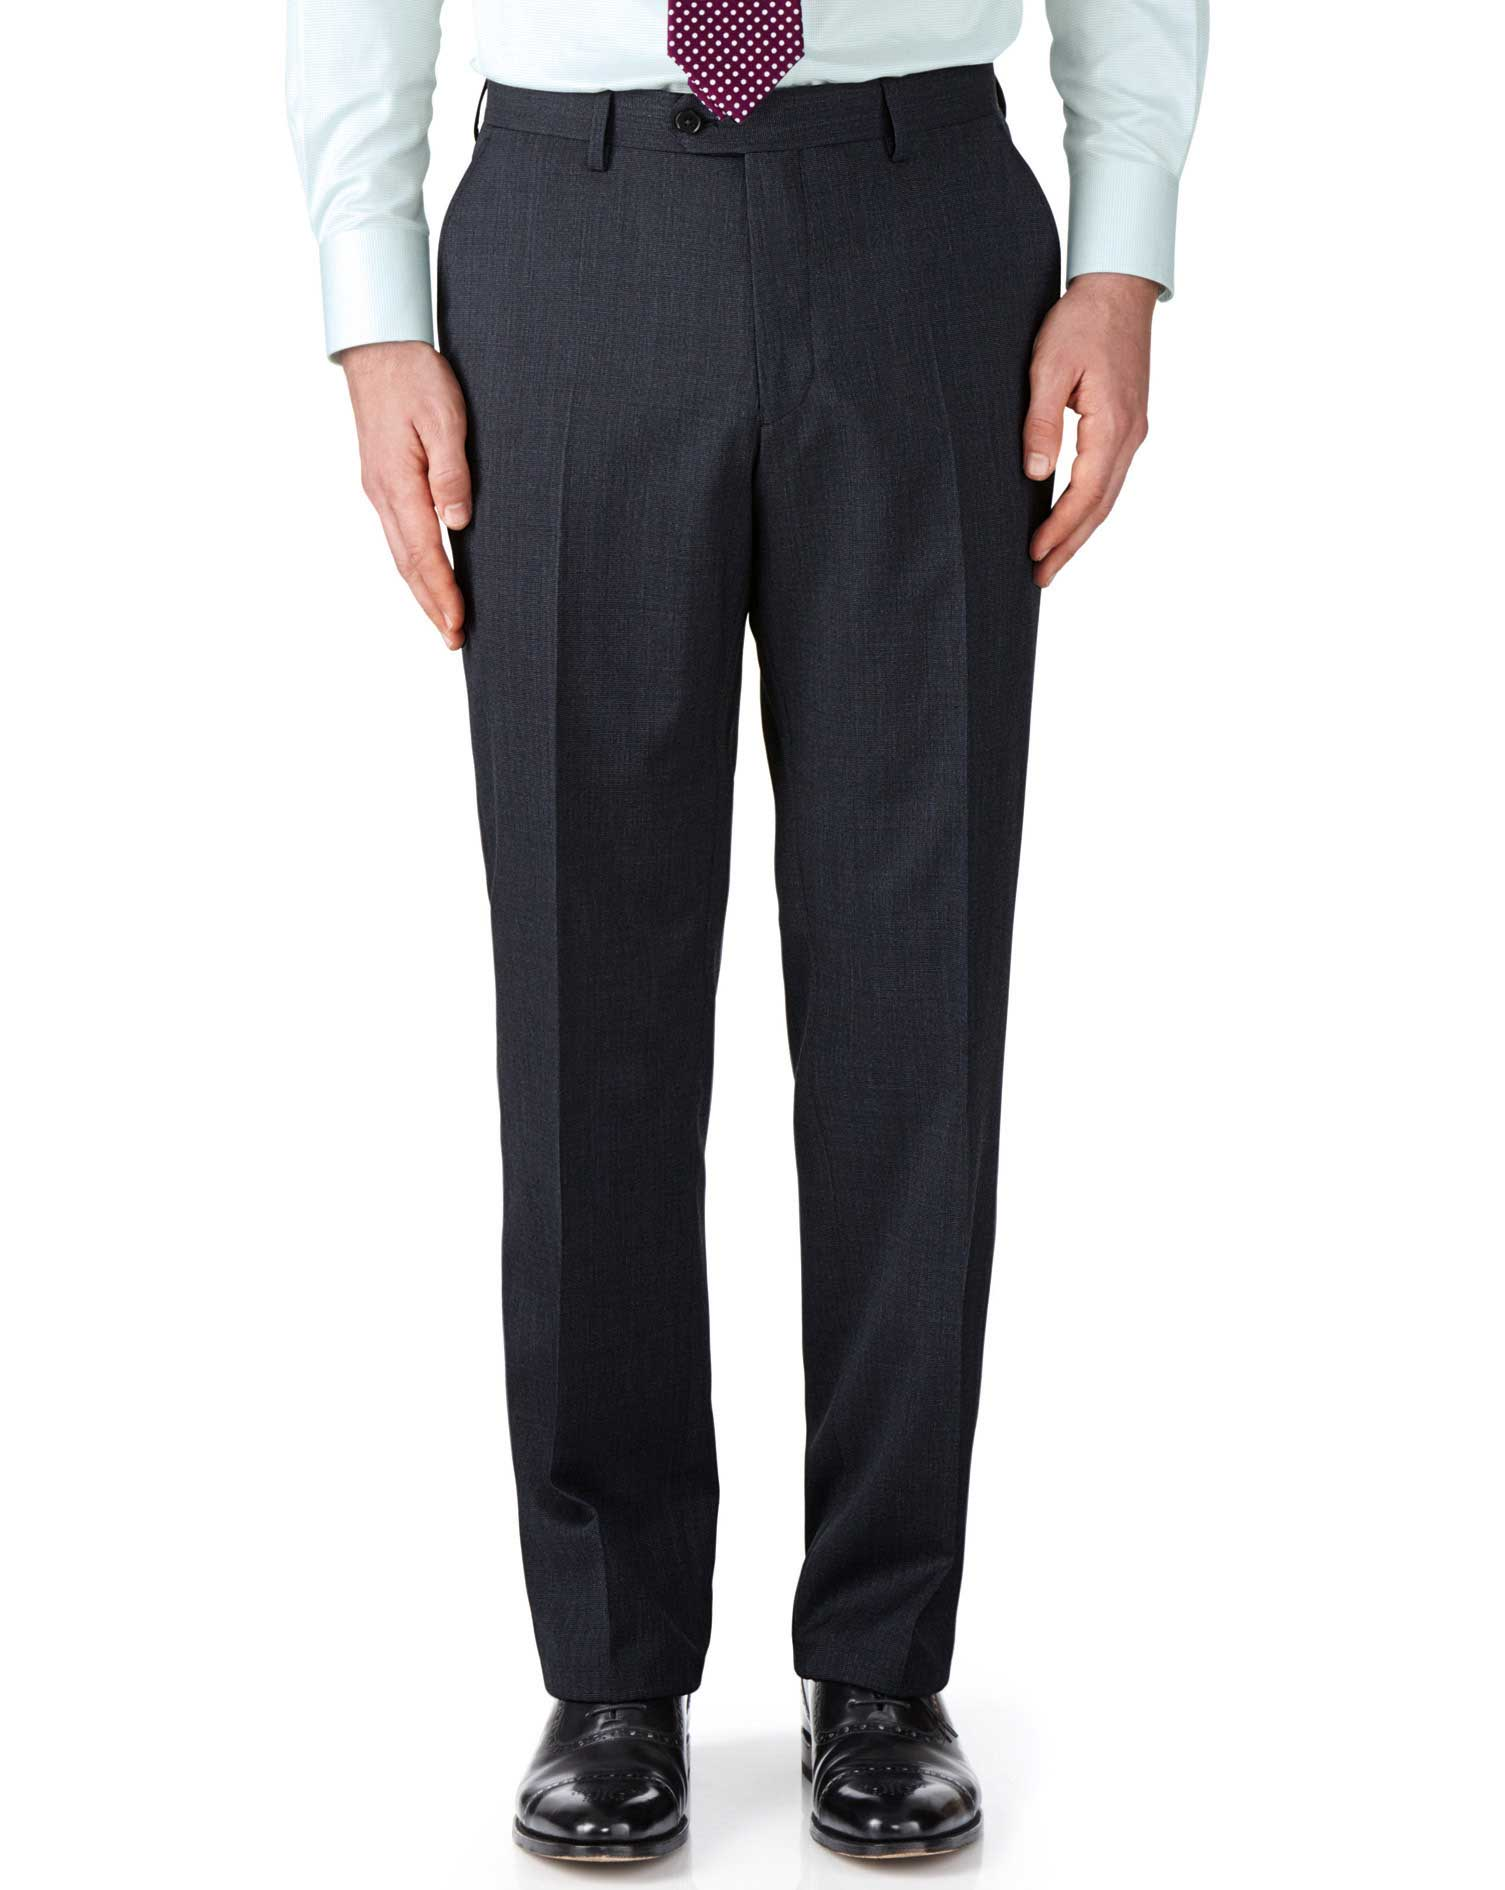 Navy Classic Fit End-On-End Business Suit Trousers Size W38 L38 by Charles Tyrwhitt